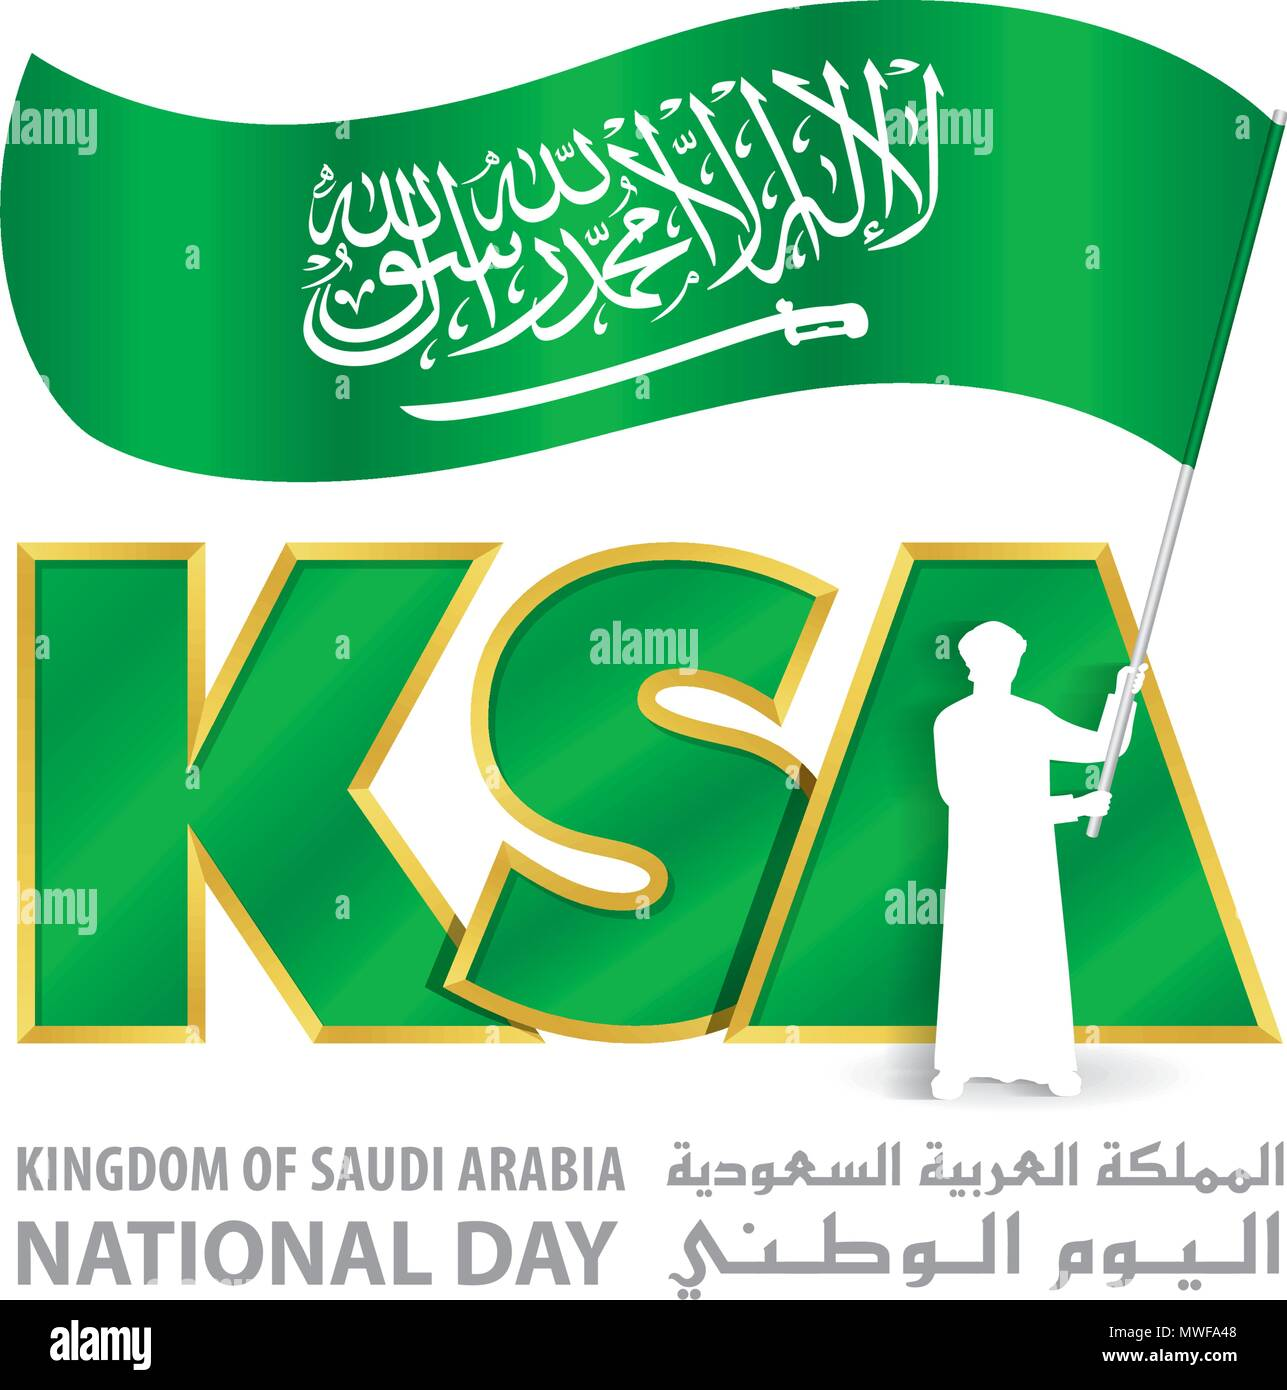 Ksa National Day Logo With Young Saudi Hold Flag An Inscription In English Arabic Kingdom Of Saudi Arabia National Day Vector Illustration